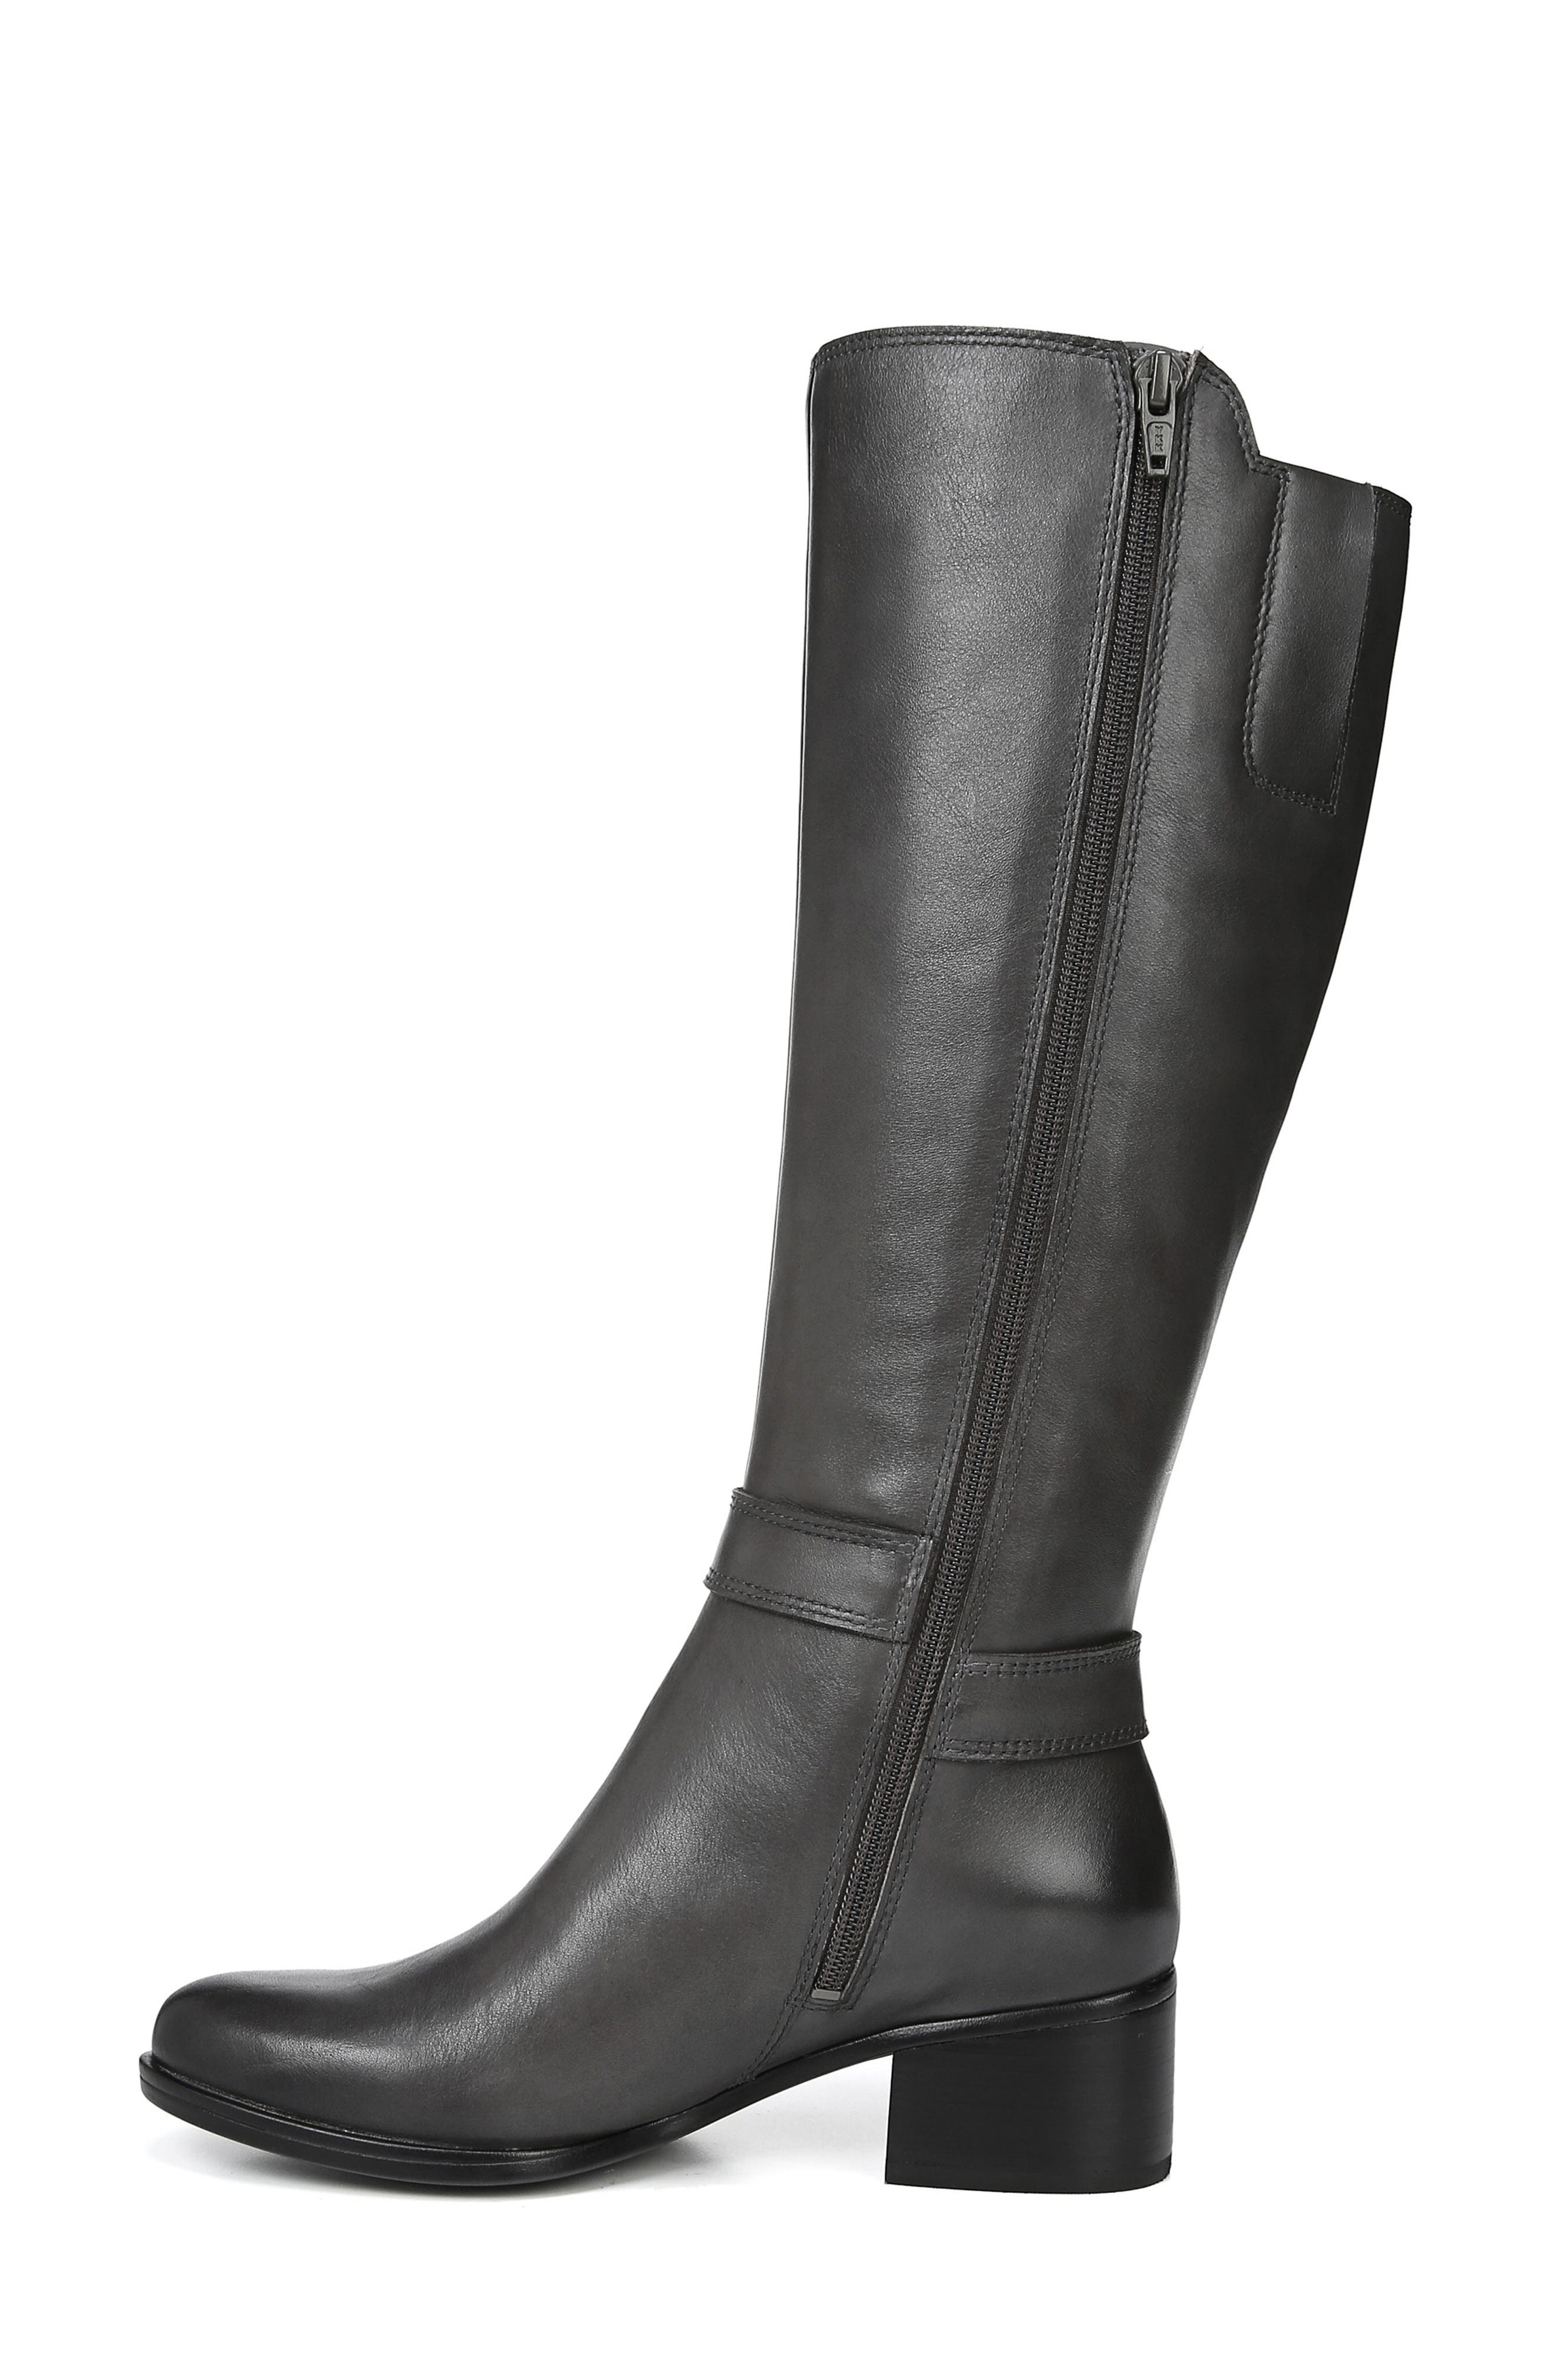 Dane Knee High Riding Boot,                             Alternate thumbnail 8, color,                             GREY LEATHER